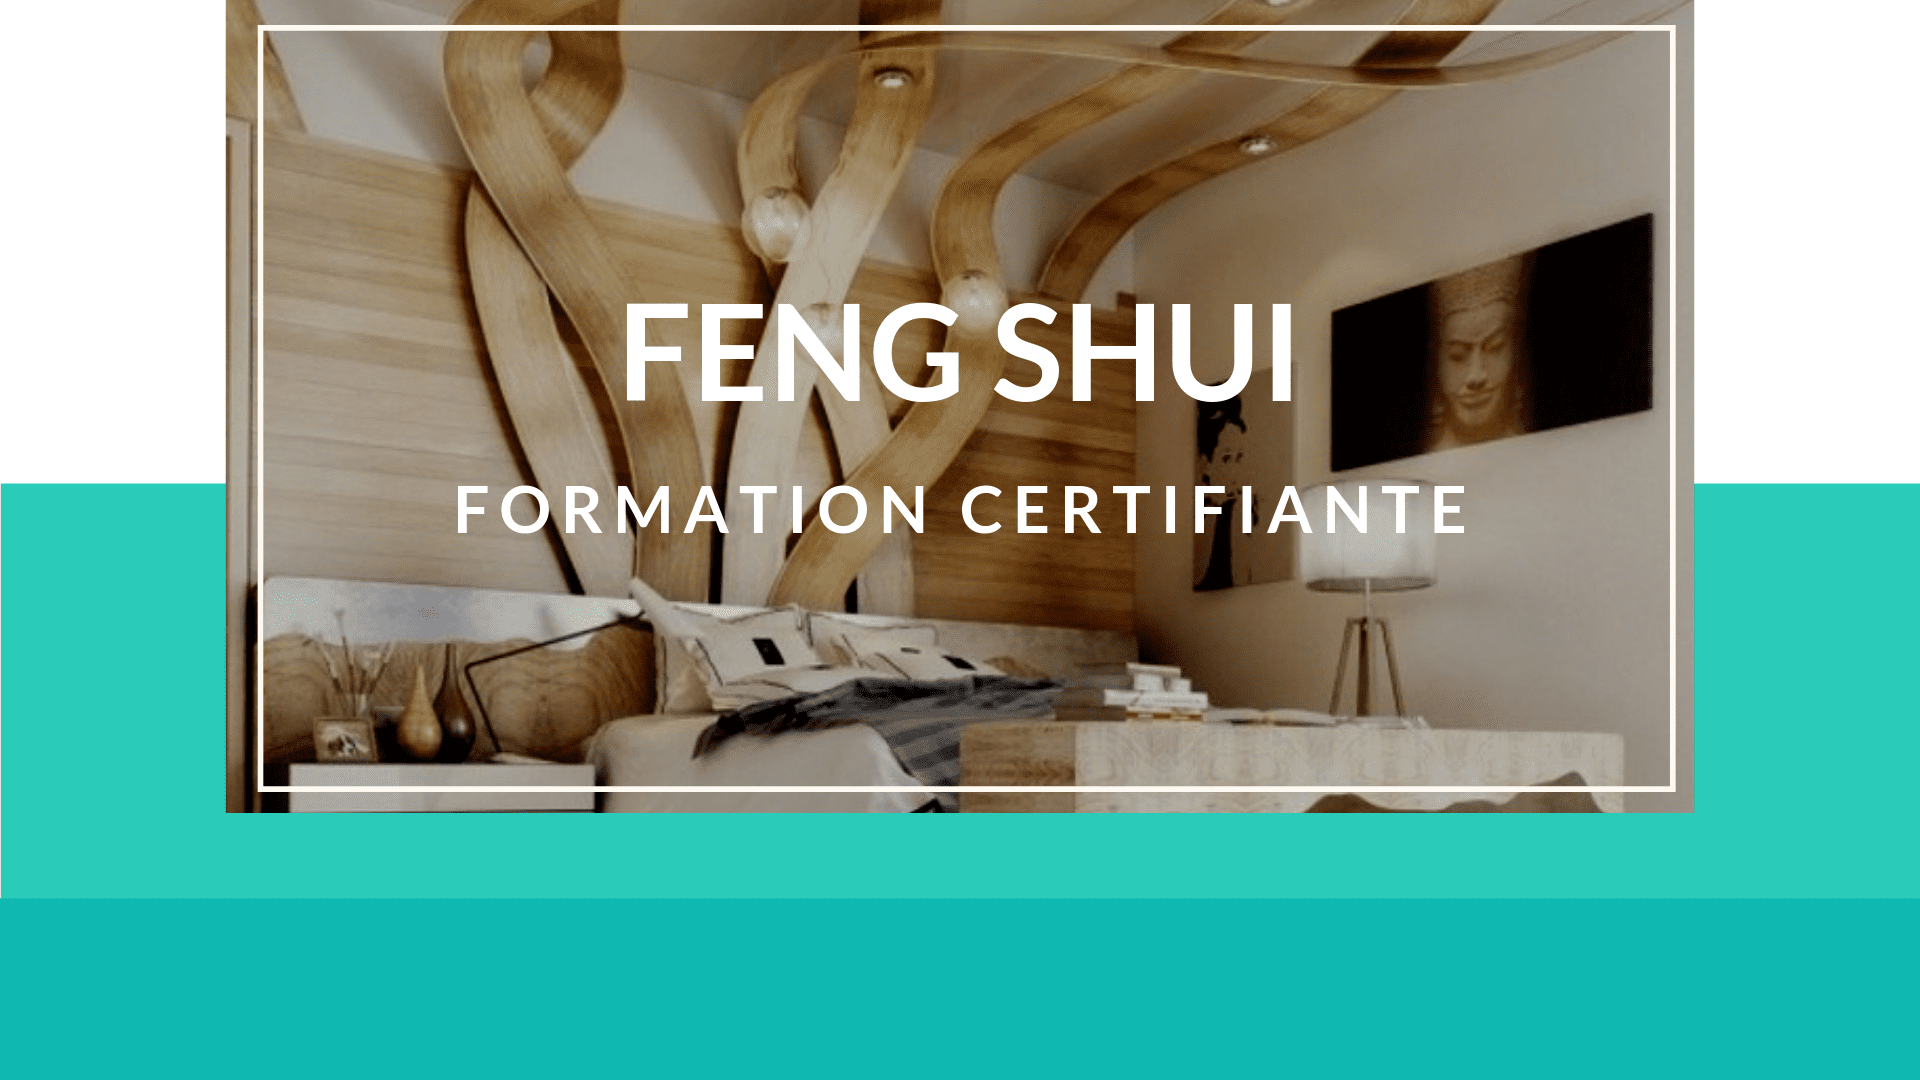 Feng Shui Cuisine Ouverte formation consultant feng shui - fédération formation